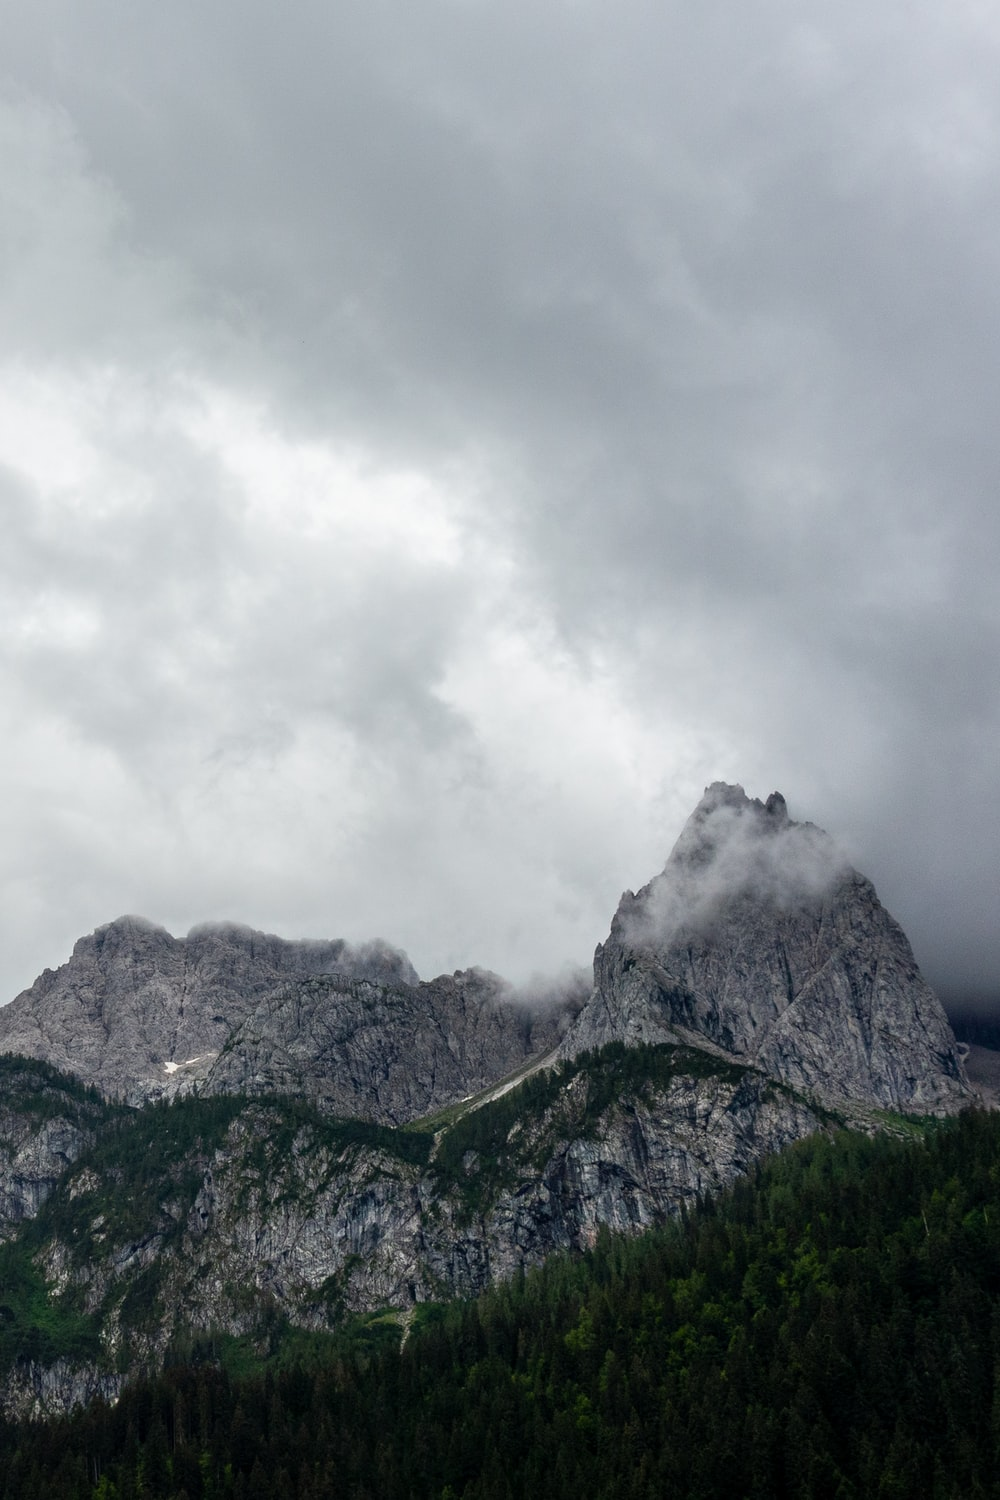 green and gray mountain under white clouds